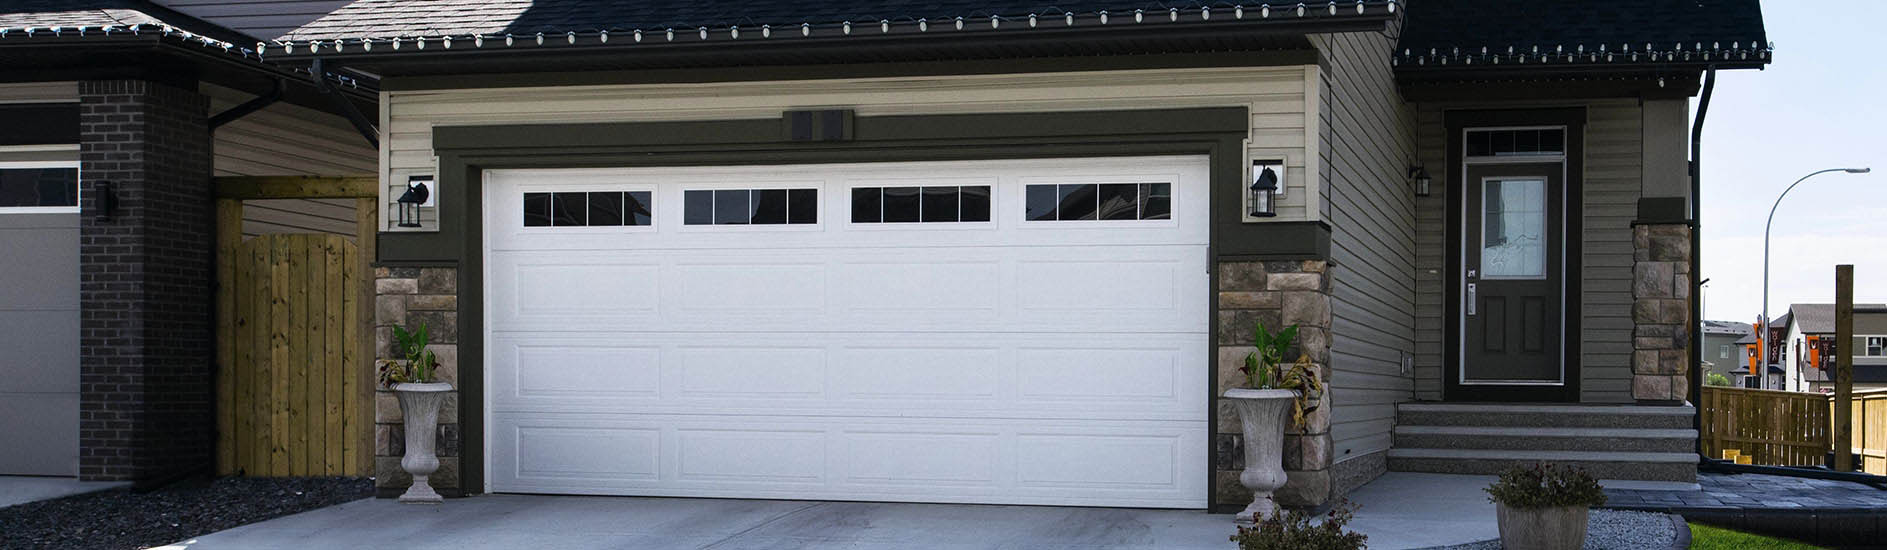 Garage Garage Door Sales U0026 Repair